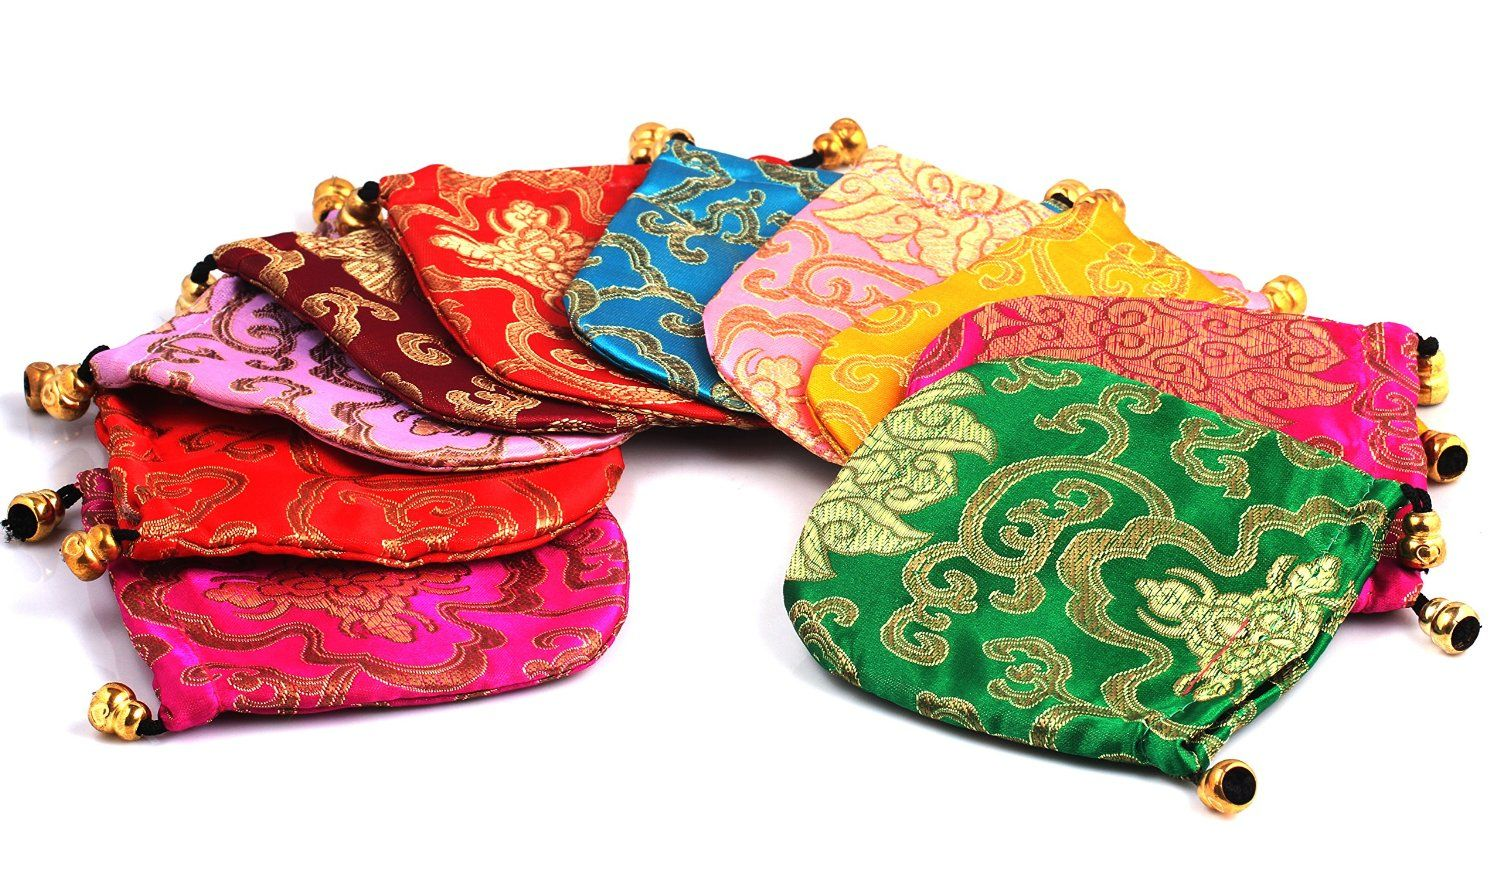 Indian Wedding Return Gift Ideas: Drawstring Bags For First Birthday Return Gifts Bags